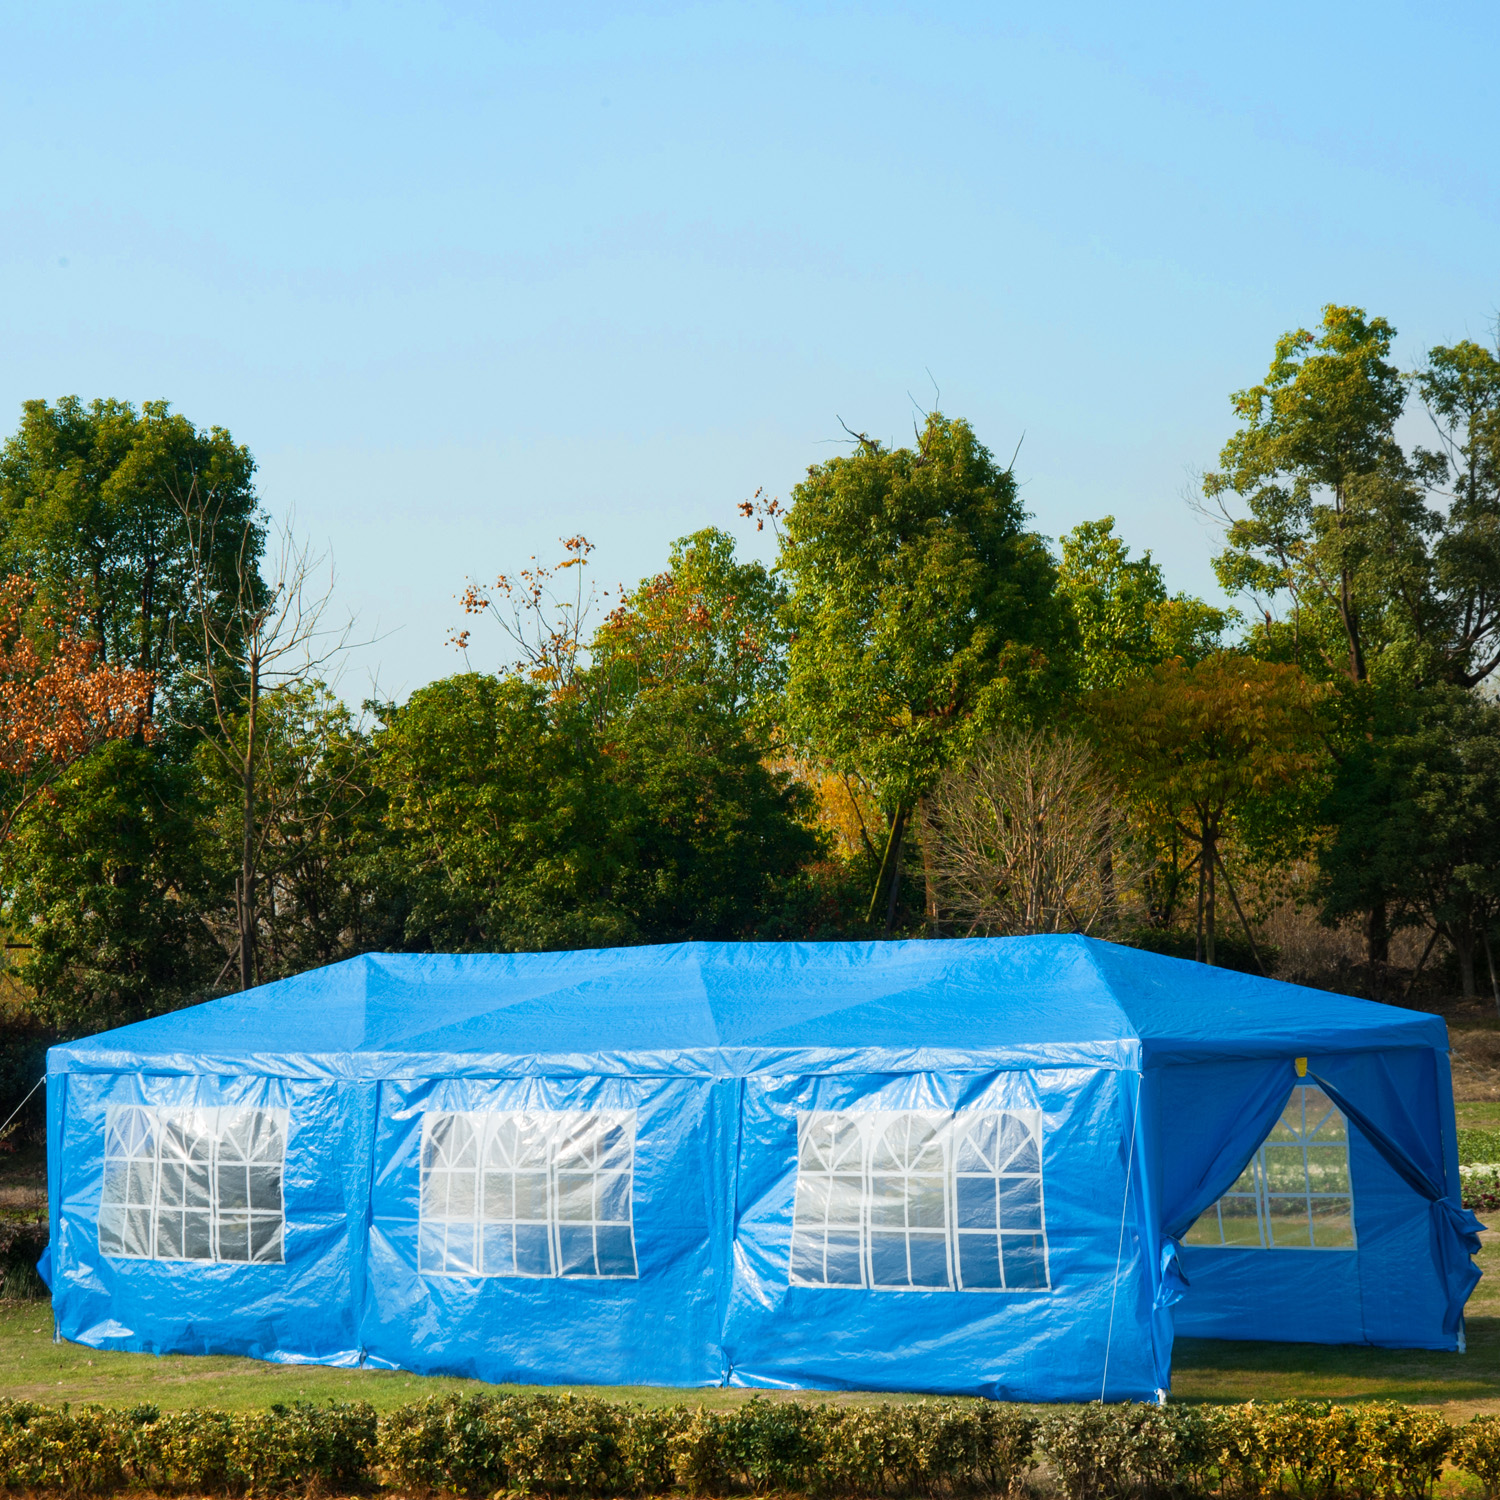 Image of CAD $189.99 Outsunny 10x30ft Gazebo Canopy Party Tent Portable Outdoor Event Garden Pavilion with 8 Removable Wall Blue / Wedding Sunshade w/ Side Canada 95509798664